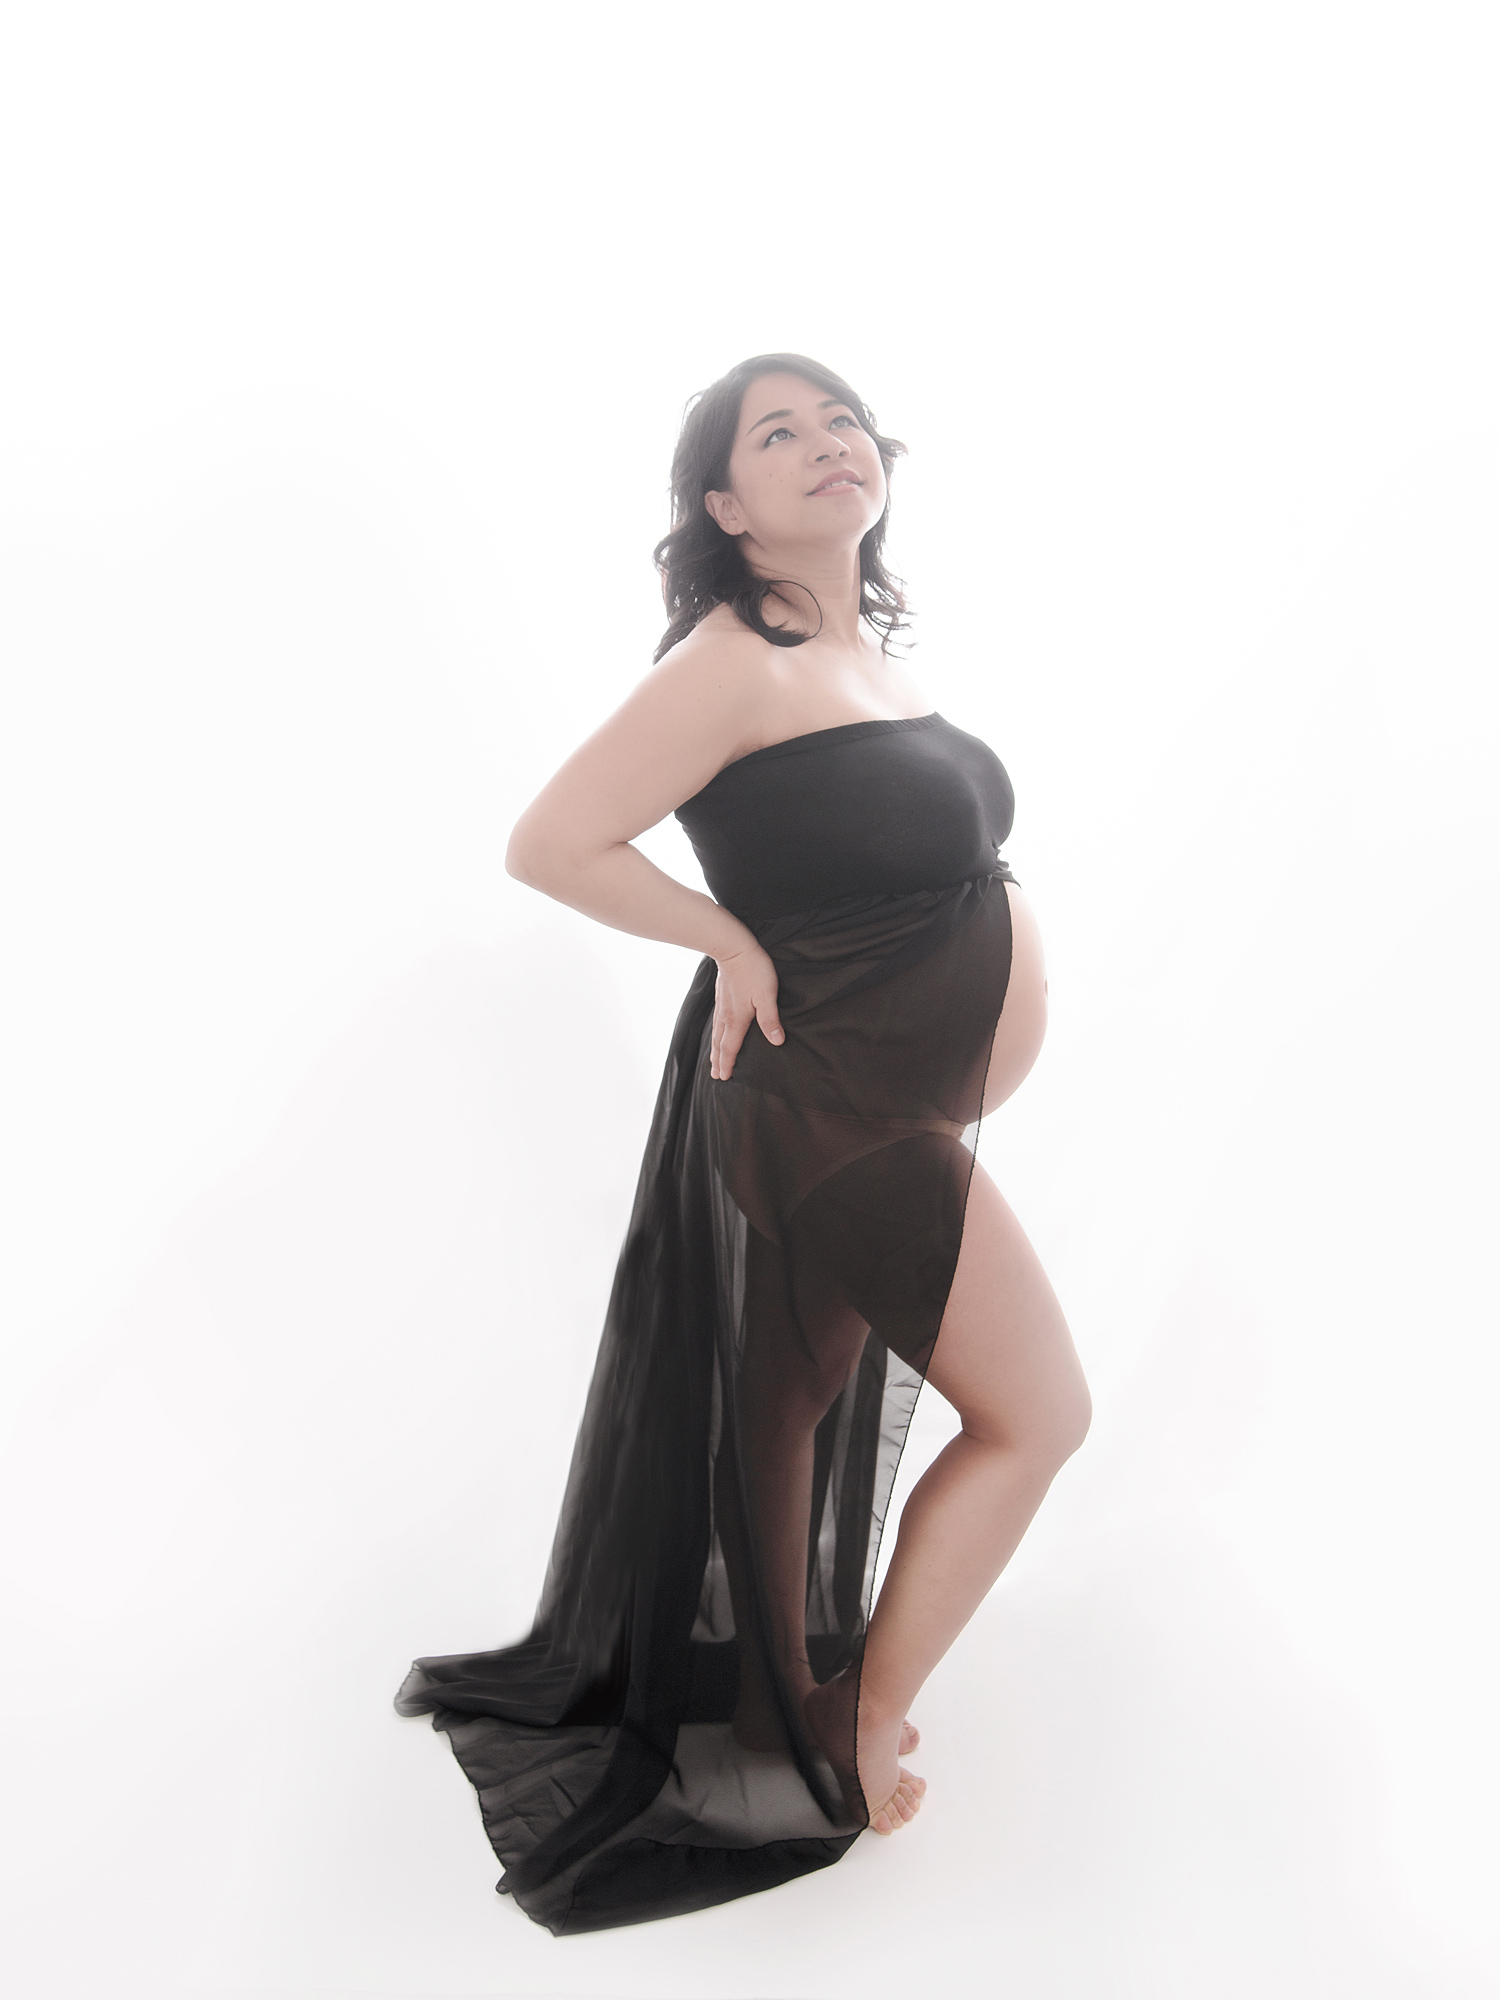 black dress white background studio pregnancy maternity photography edinburgh midlothian